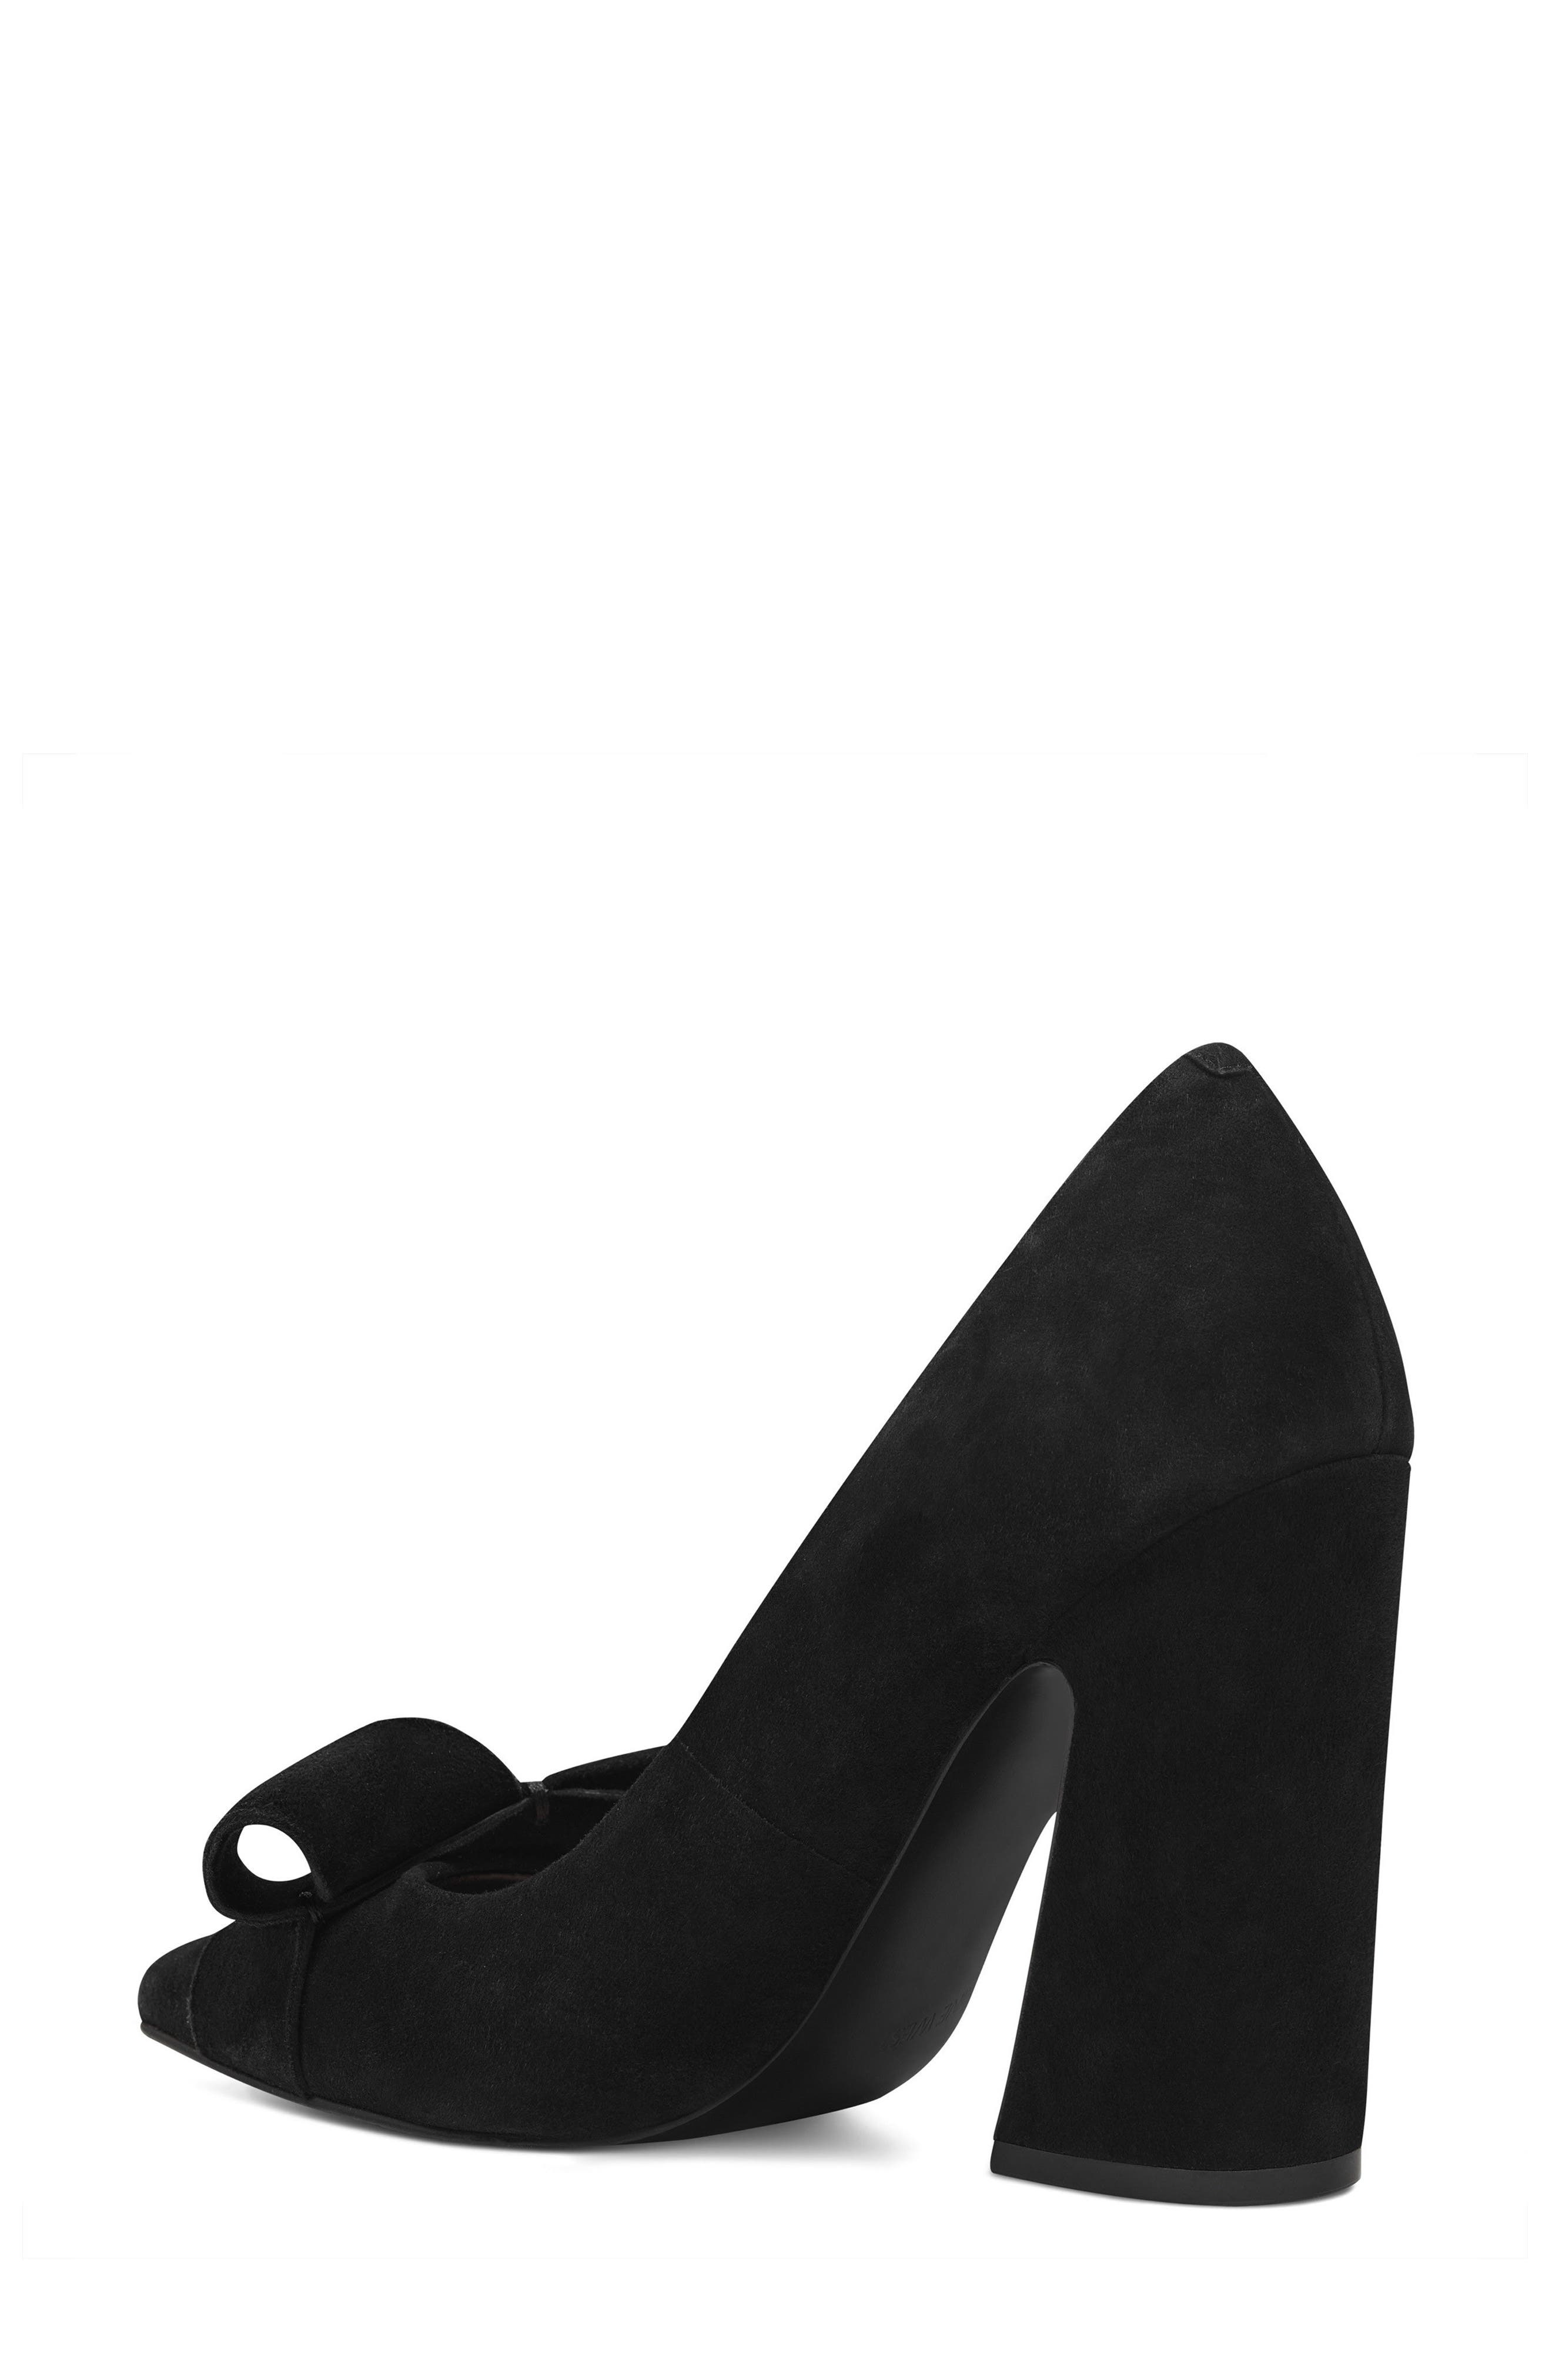 Haddriana Pointy Toe Pump,                             Alternate thumbnail 2, color,                             Black Suede